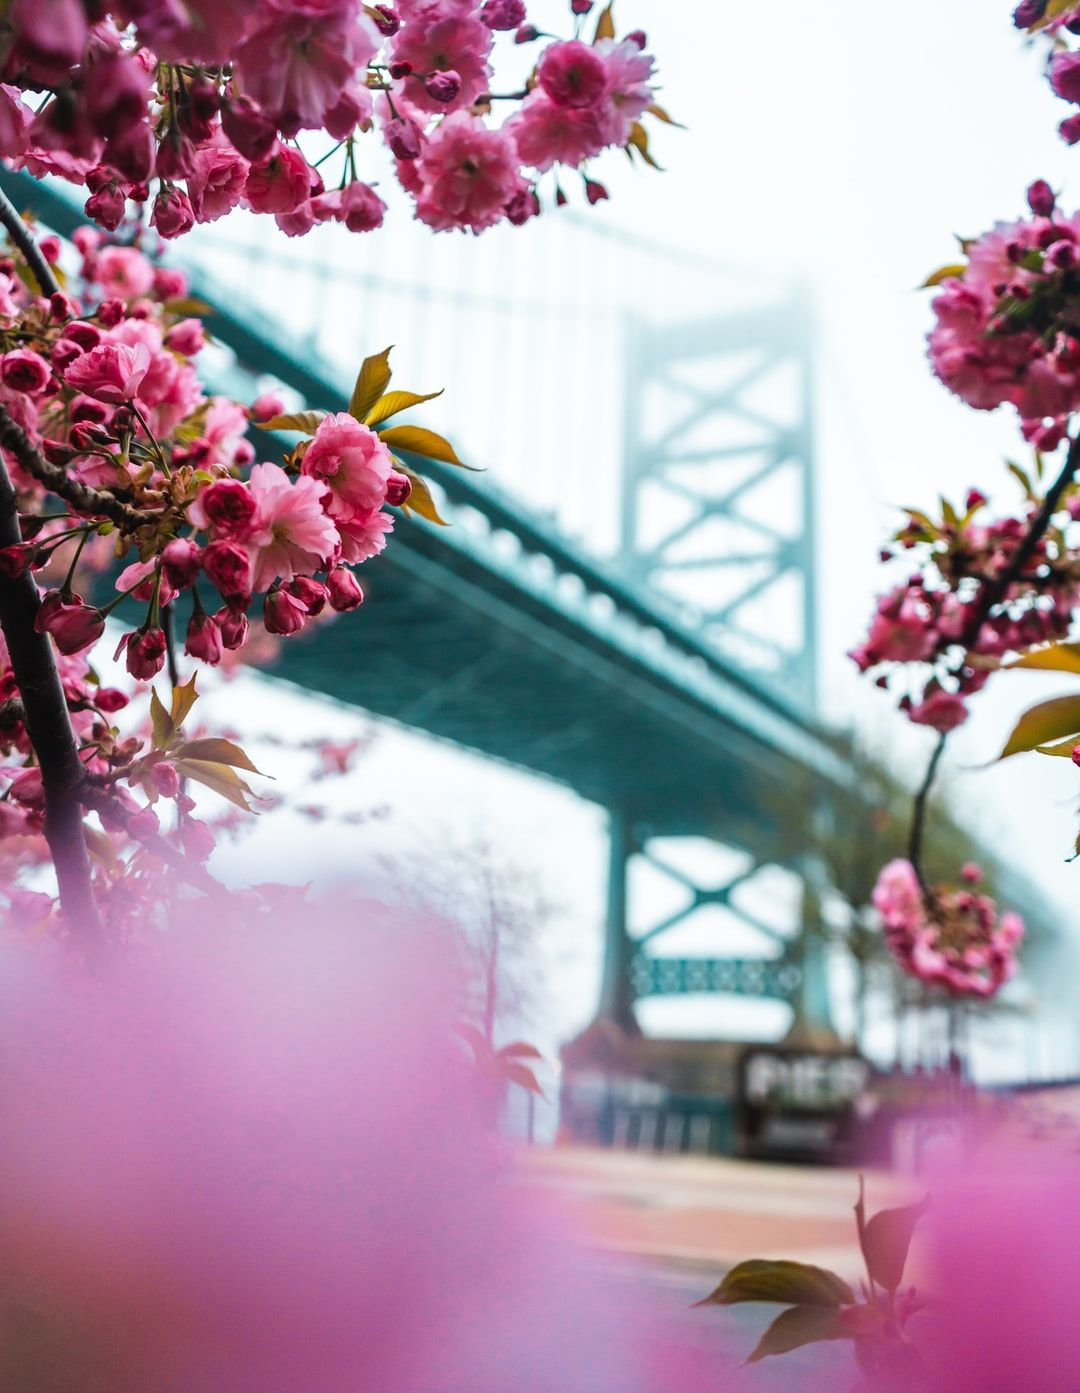 Selective Focus Photography Of Pink Petaled Flowers With A Bridge In The Background Photo Free Plant Image On Unsplash Flower Photos Flowers Flower Pictures Amazing flower bridge wallpaper